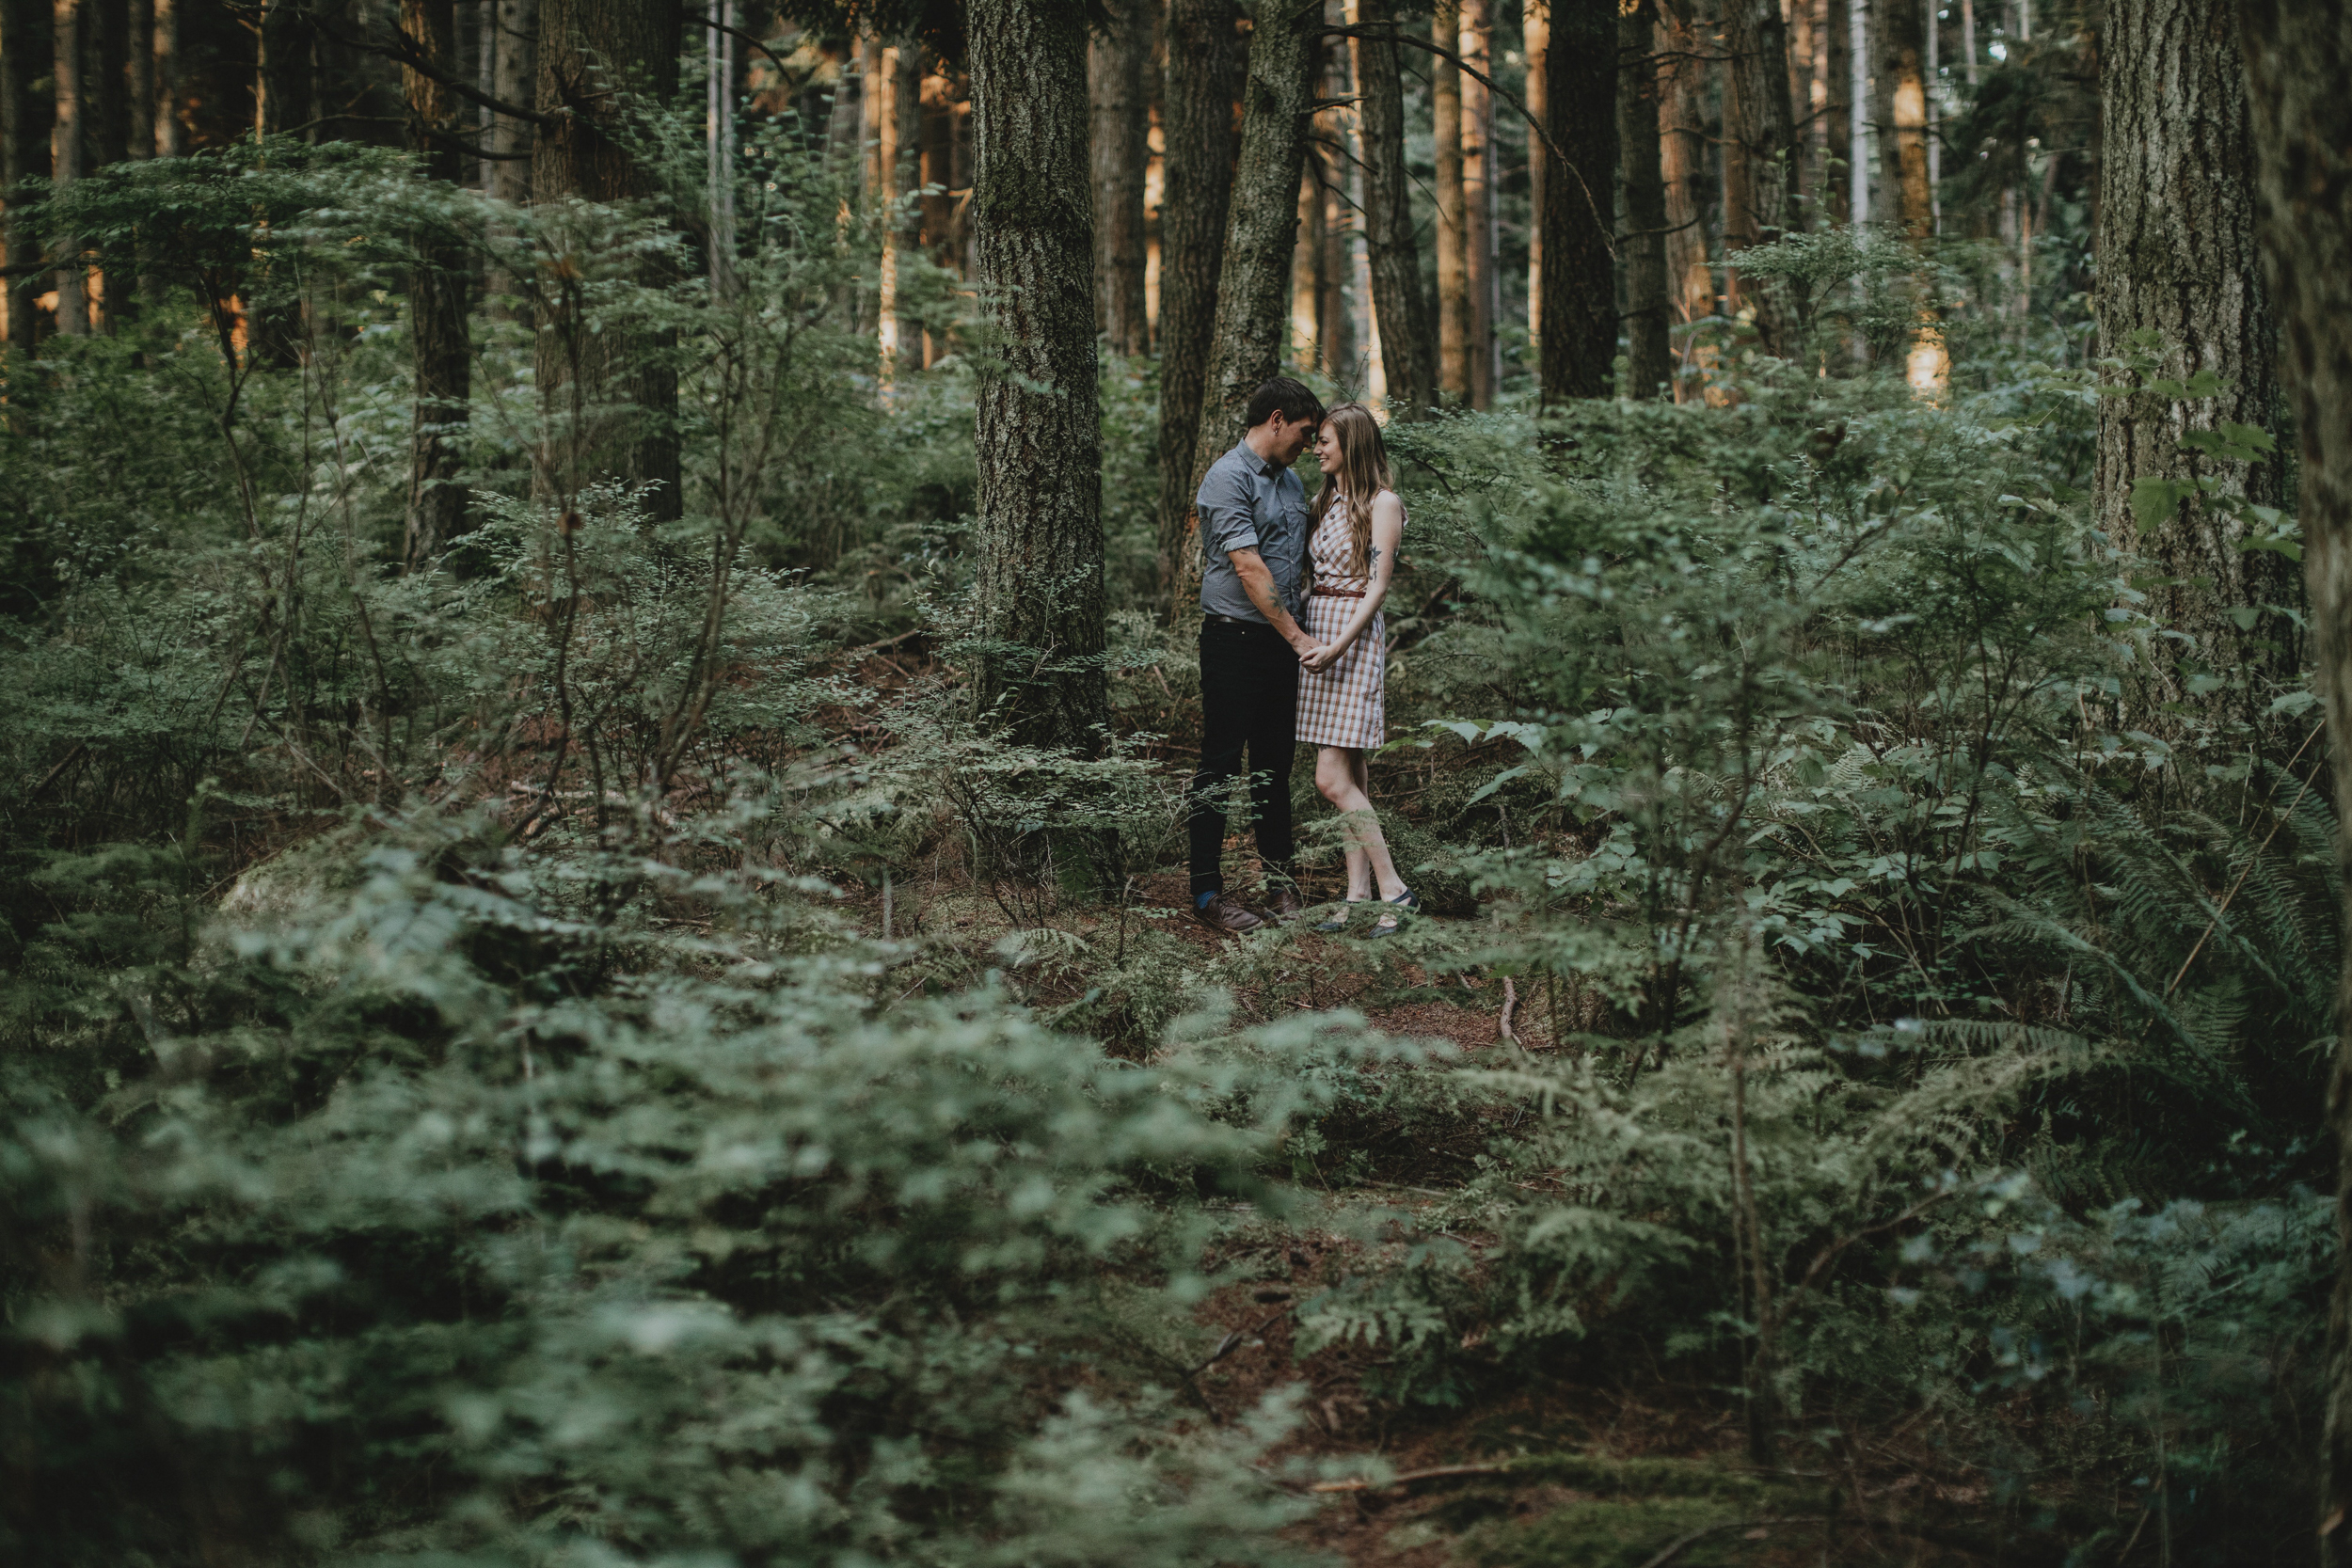 Stanley-Park-Forest-Engagement-Vancouver-6.jpg